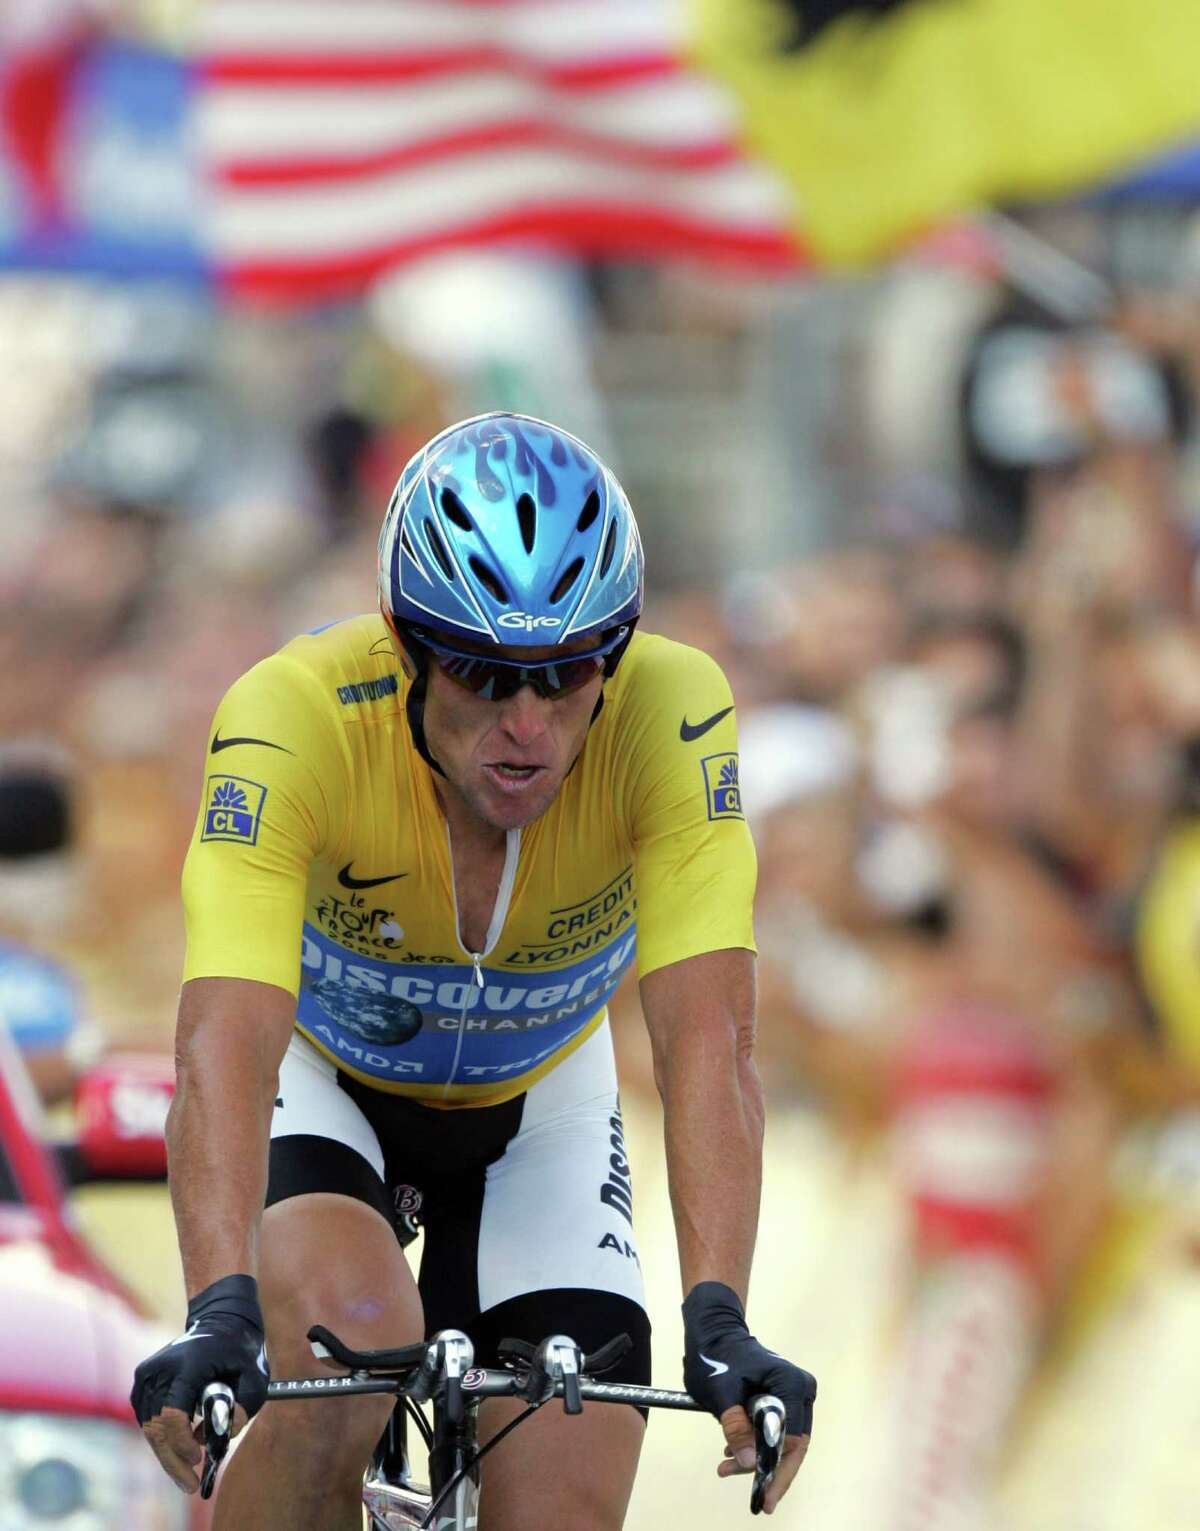 A reader comments on the doping tests taken by cyclist Lance Armstrong.